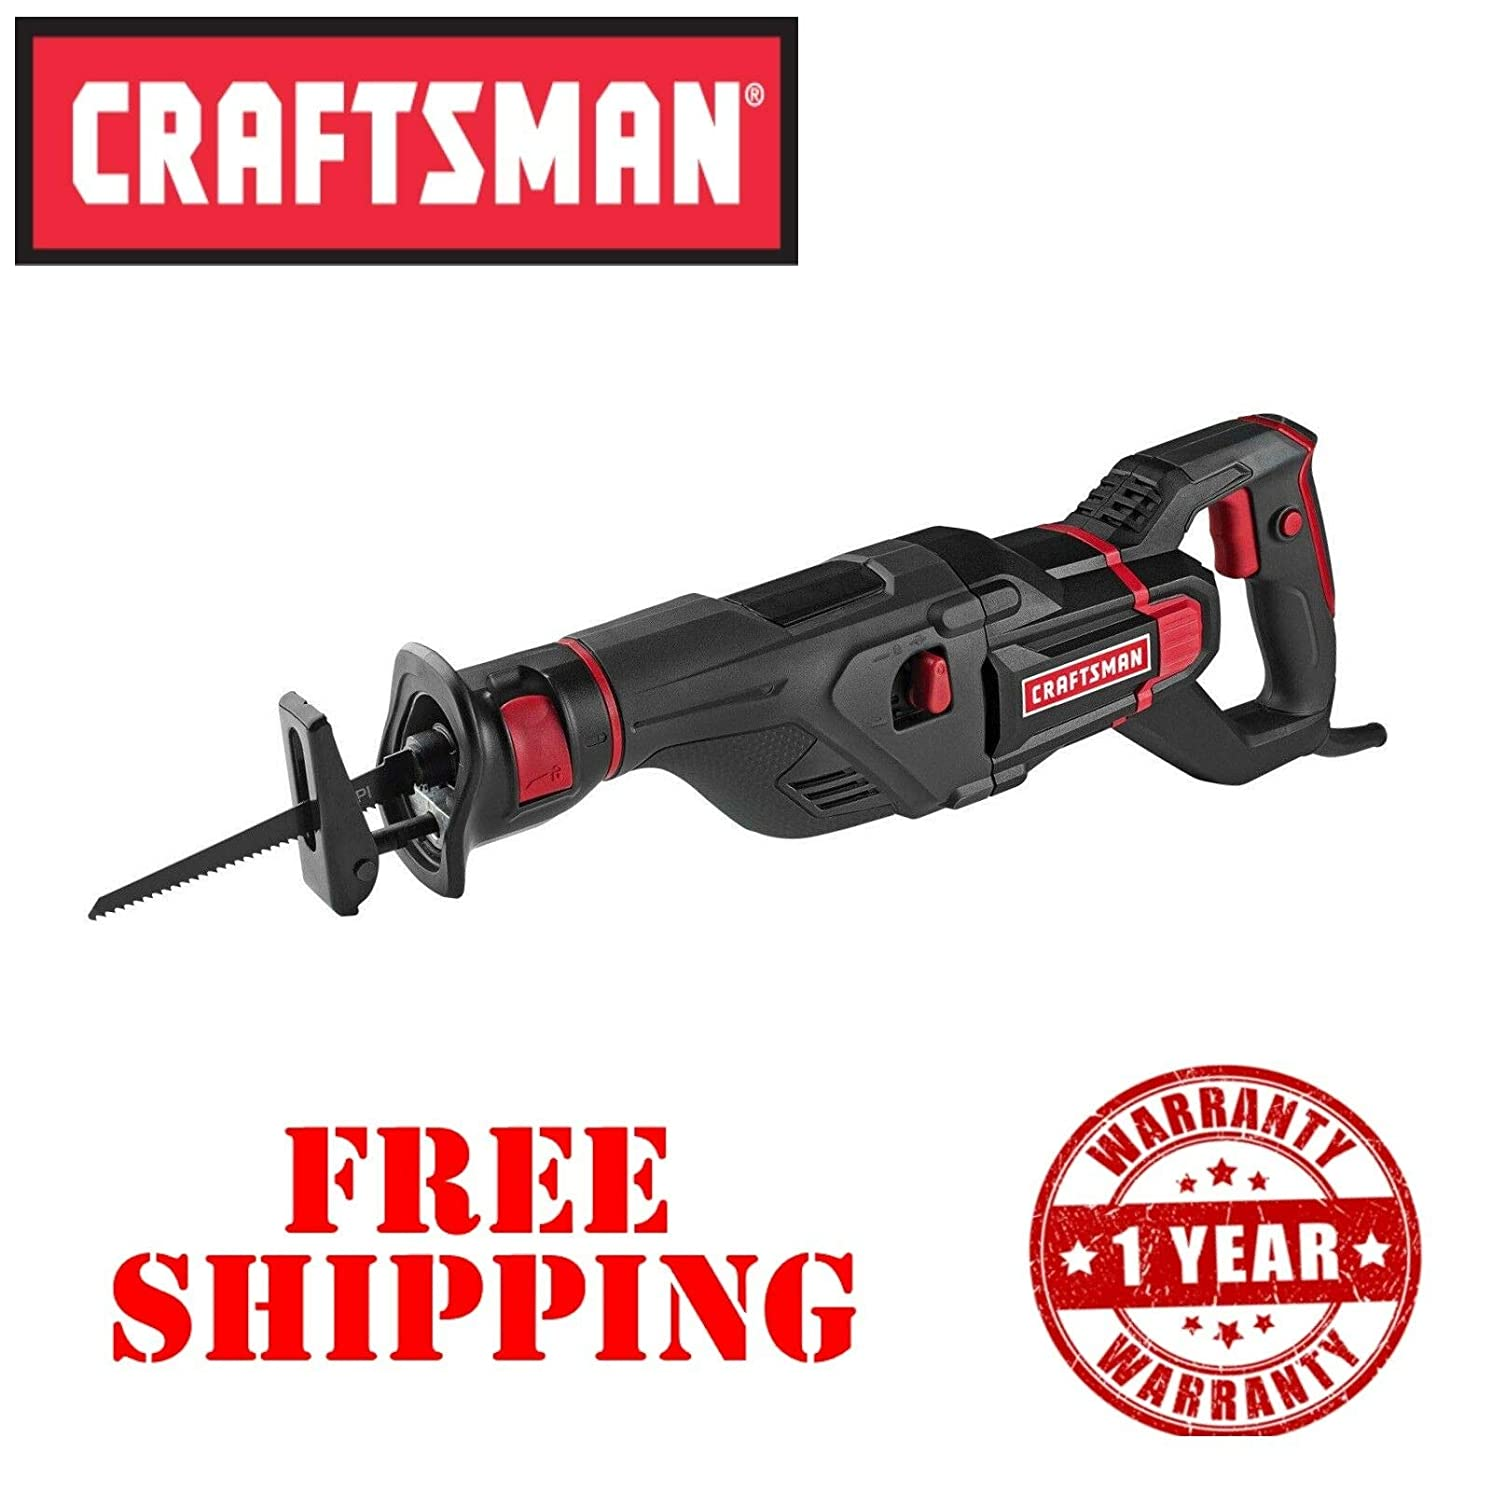 New Craftsman 12A Amp Scrolling Reciprocating Saw Corded 1 1/8 inch Blade Stroke